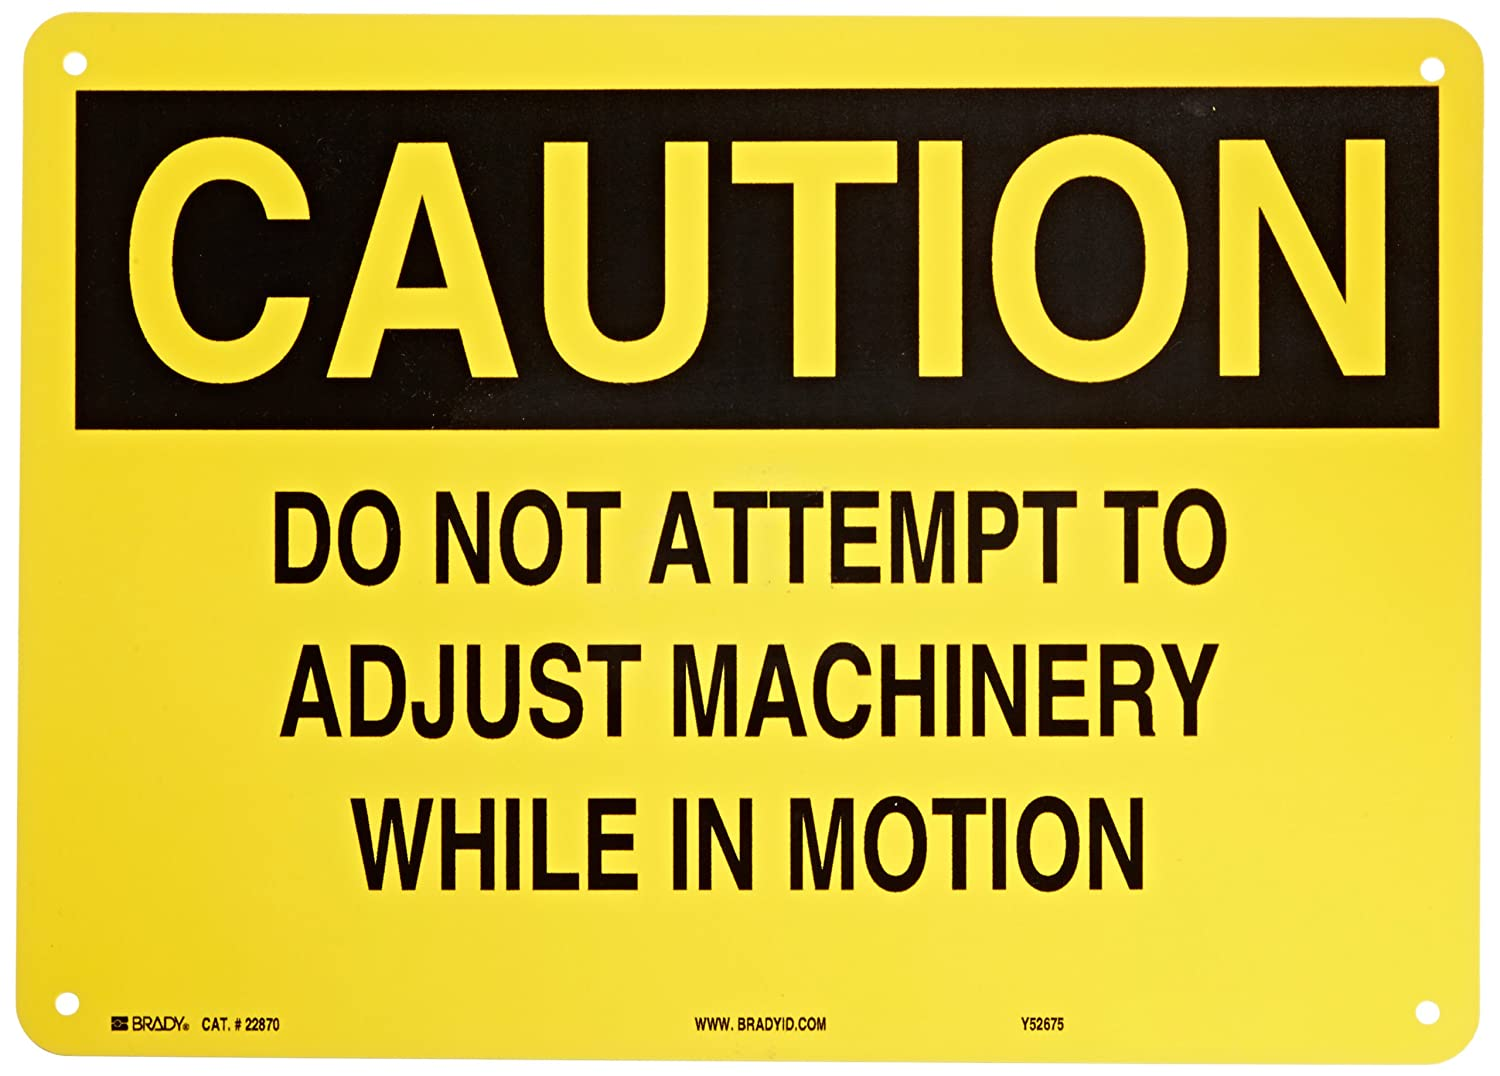 10 X 14 Brady 22870 Plastic Machine /& Operational Sign Legend Do Not Attempt To Adjust Machinery While In Motion